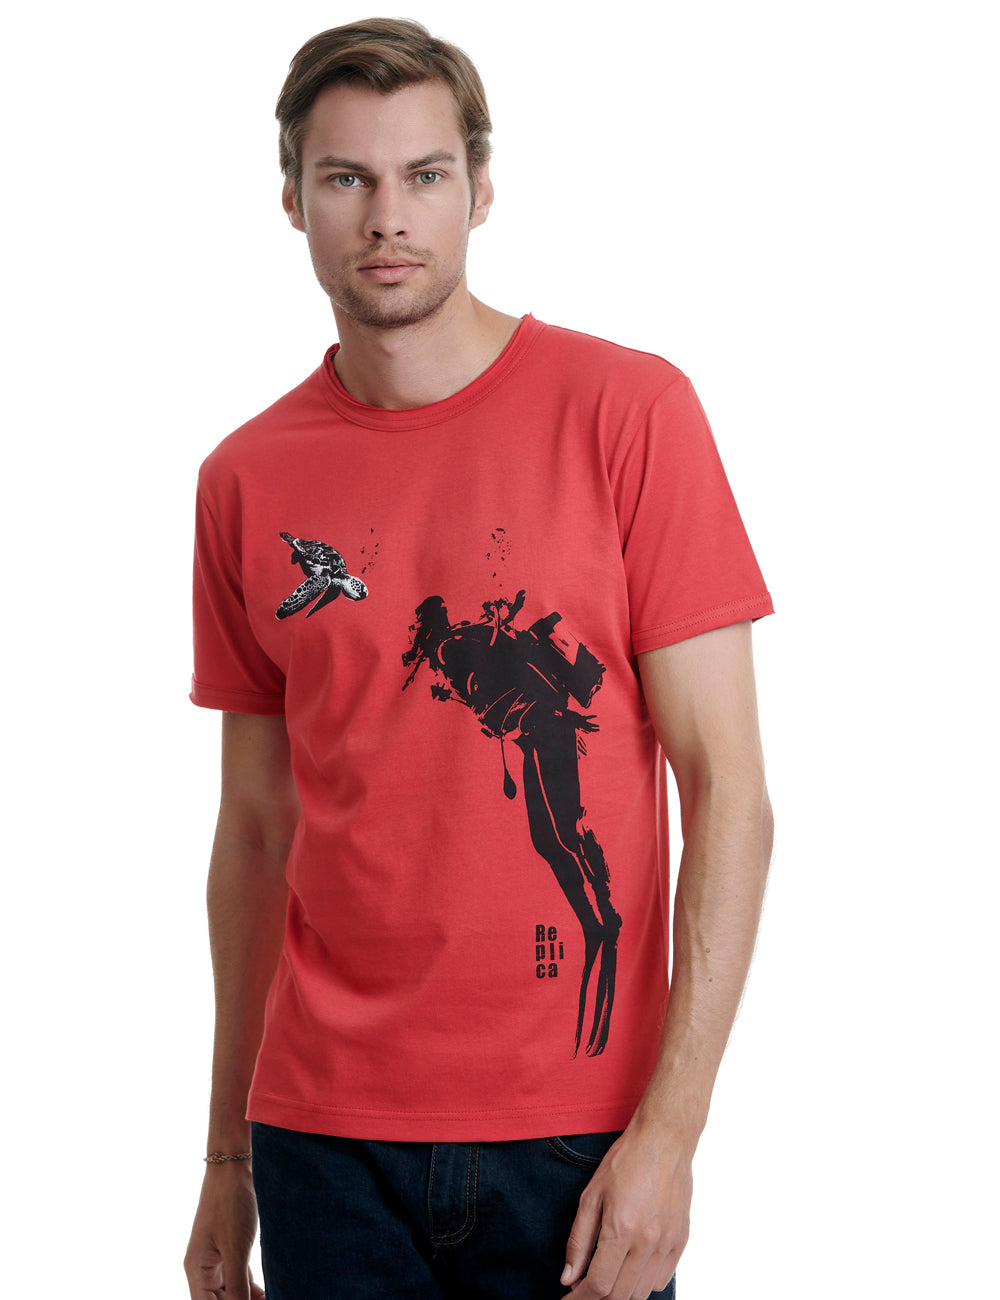 Diver Replica tshirt Greece Red